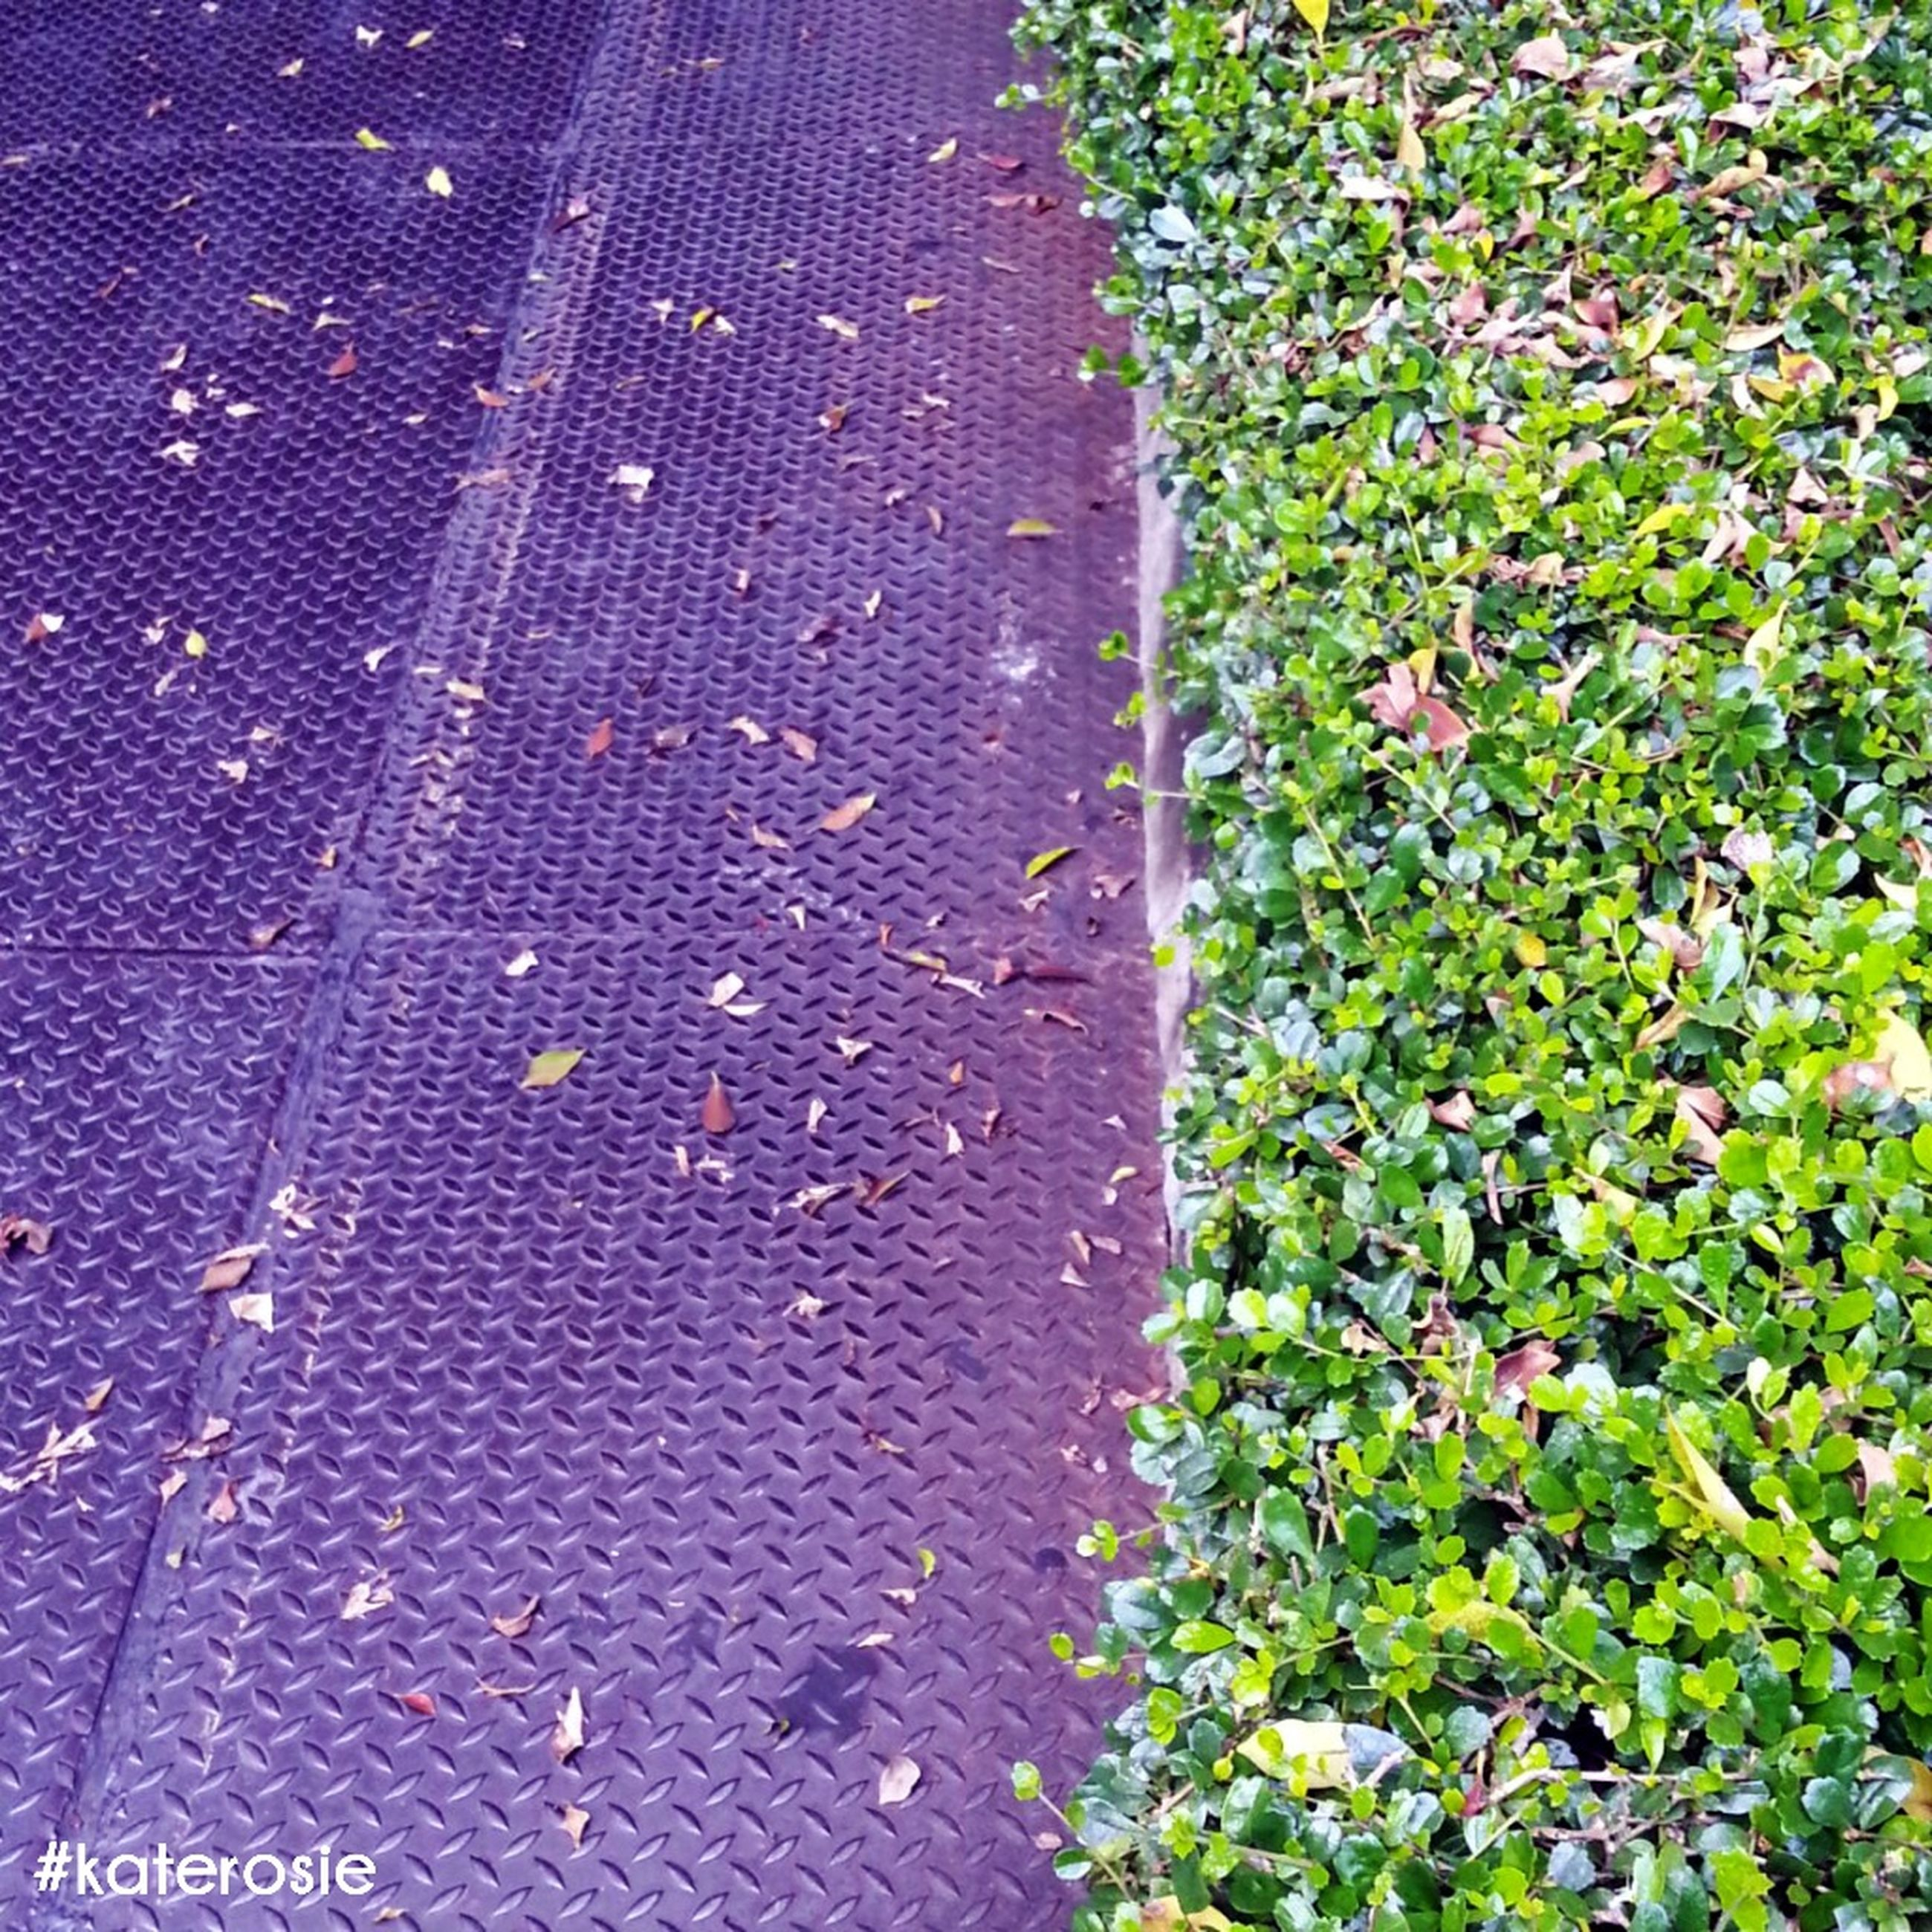 high angle view, leaf, plant, growth, field, green color, nature, autumn, day, grass, outdoors, fallen, no people, sunlight, dry, change, leaves, road, ground, season